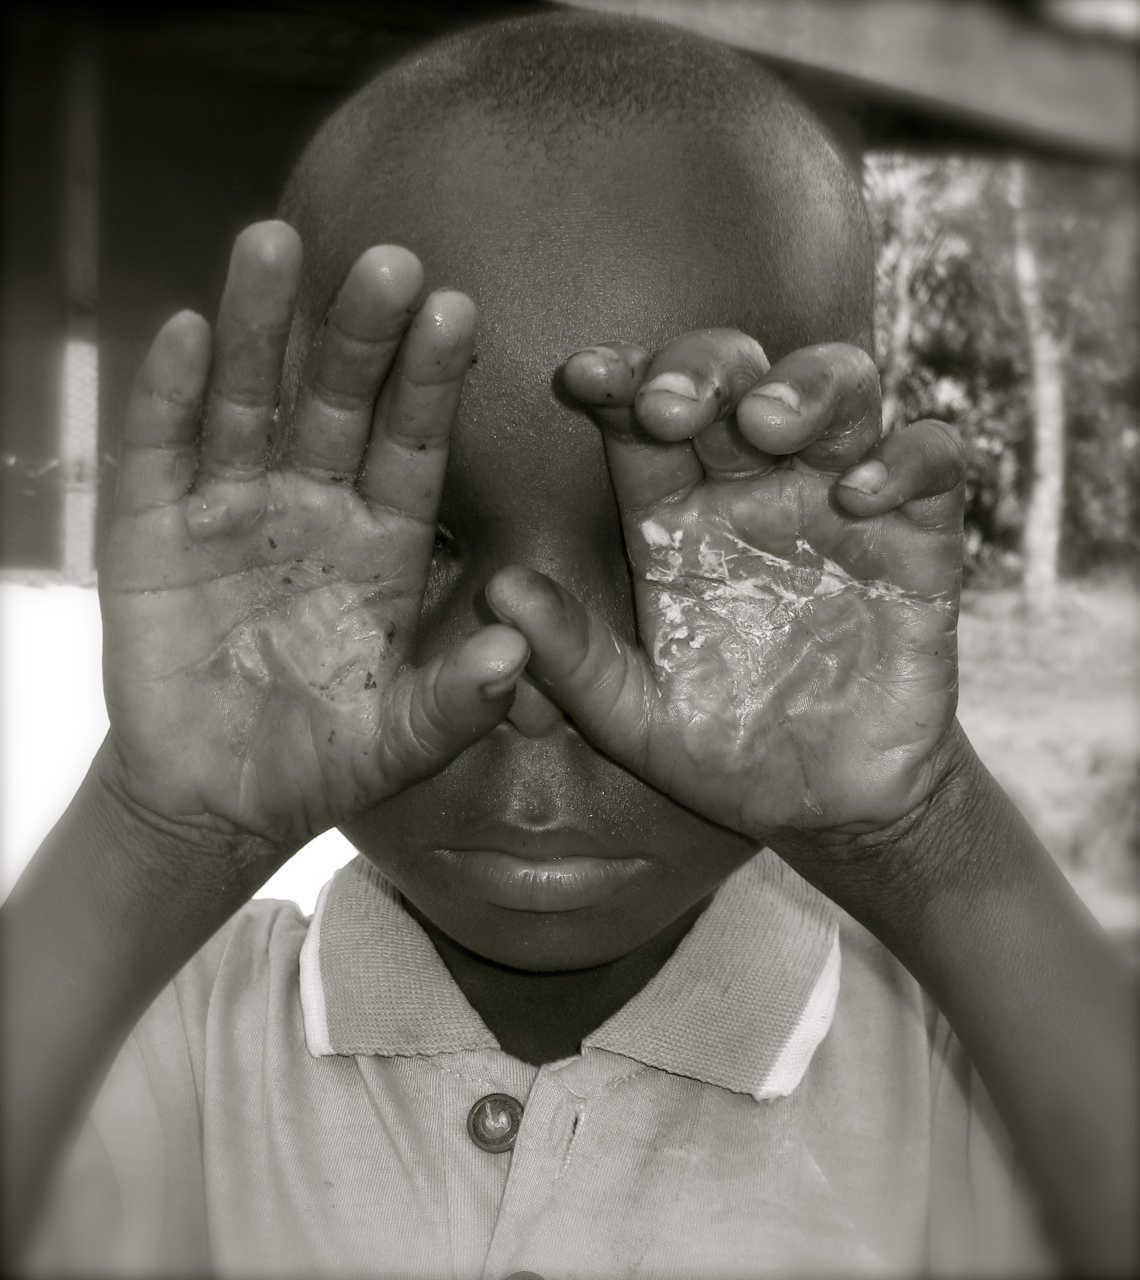 Child Abuse victim in Kenya